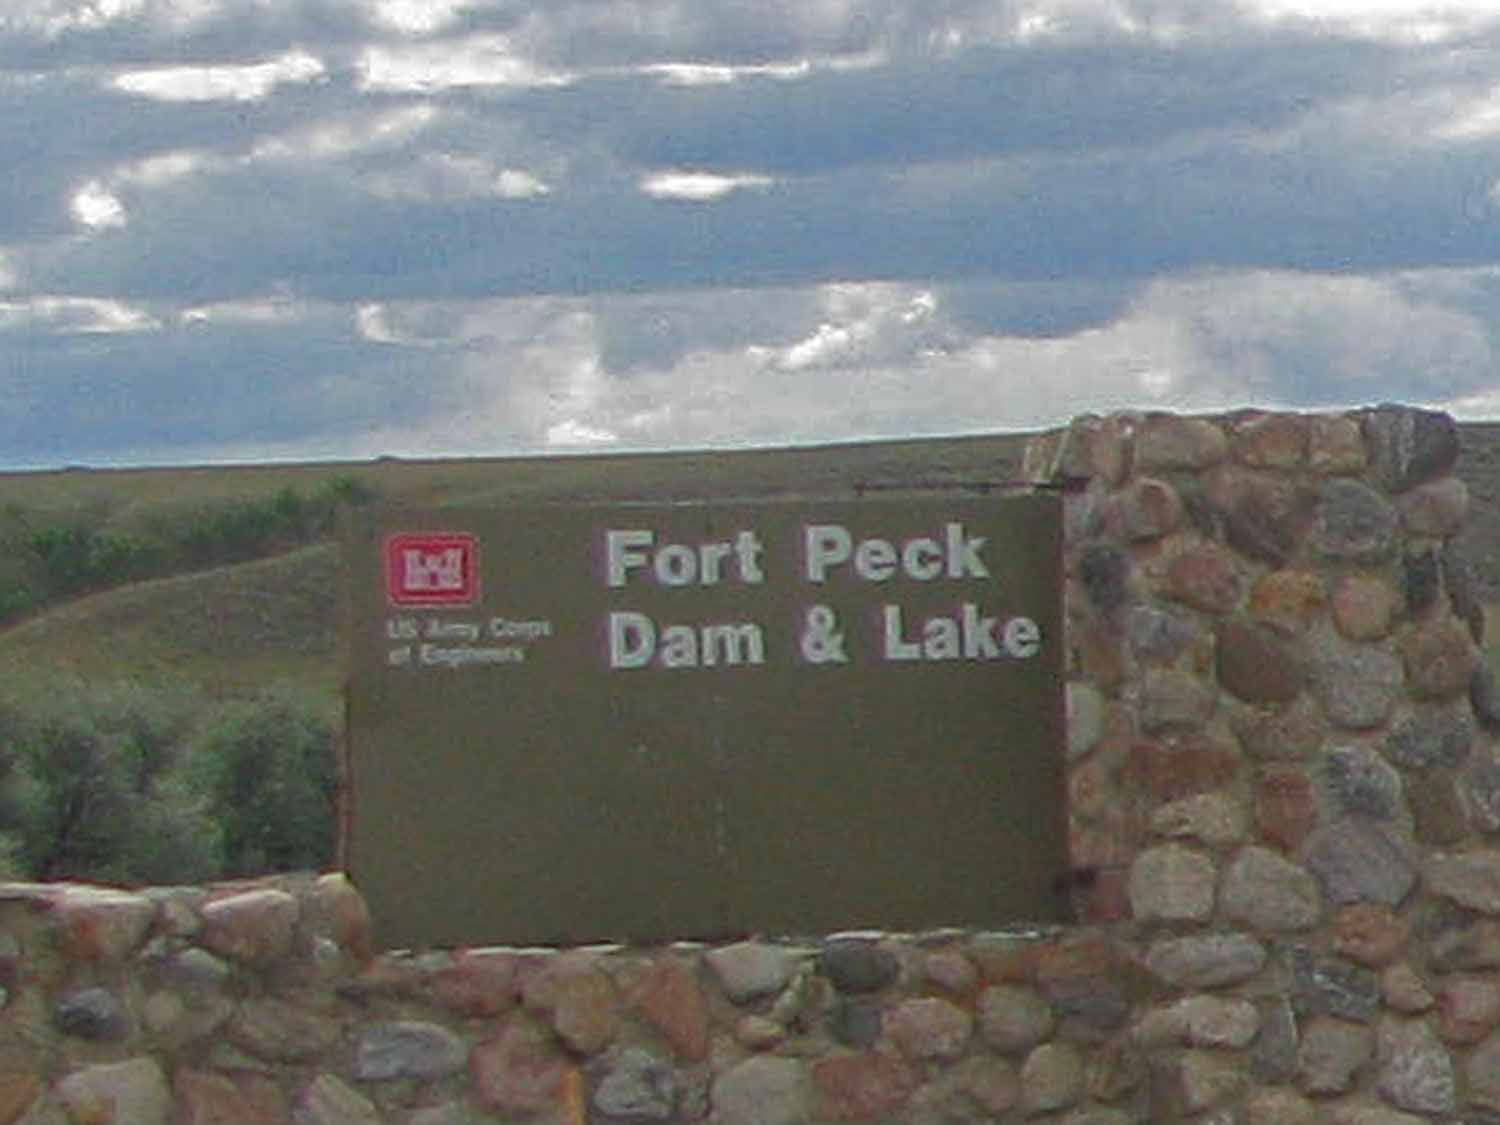 Forth Peck Dam is a Corps of Engineer project in Montana.